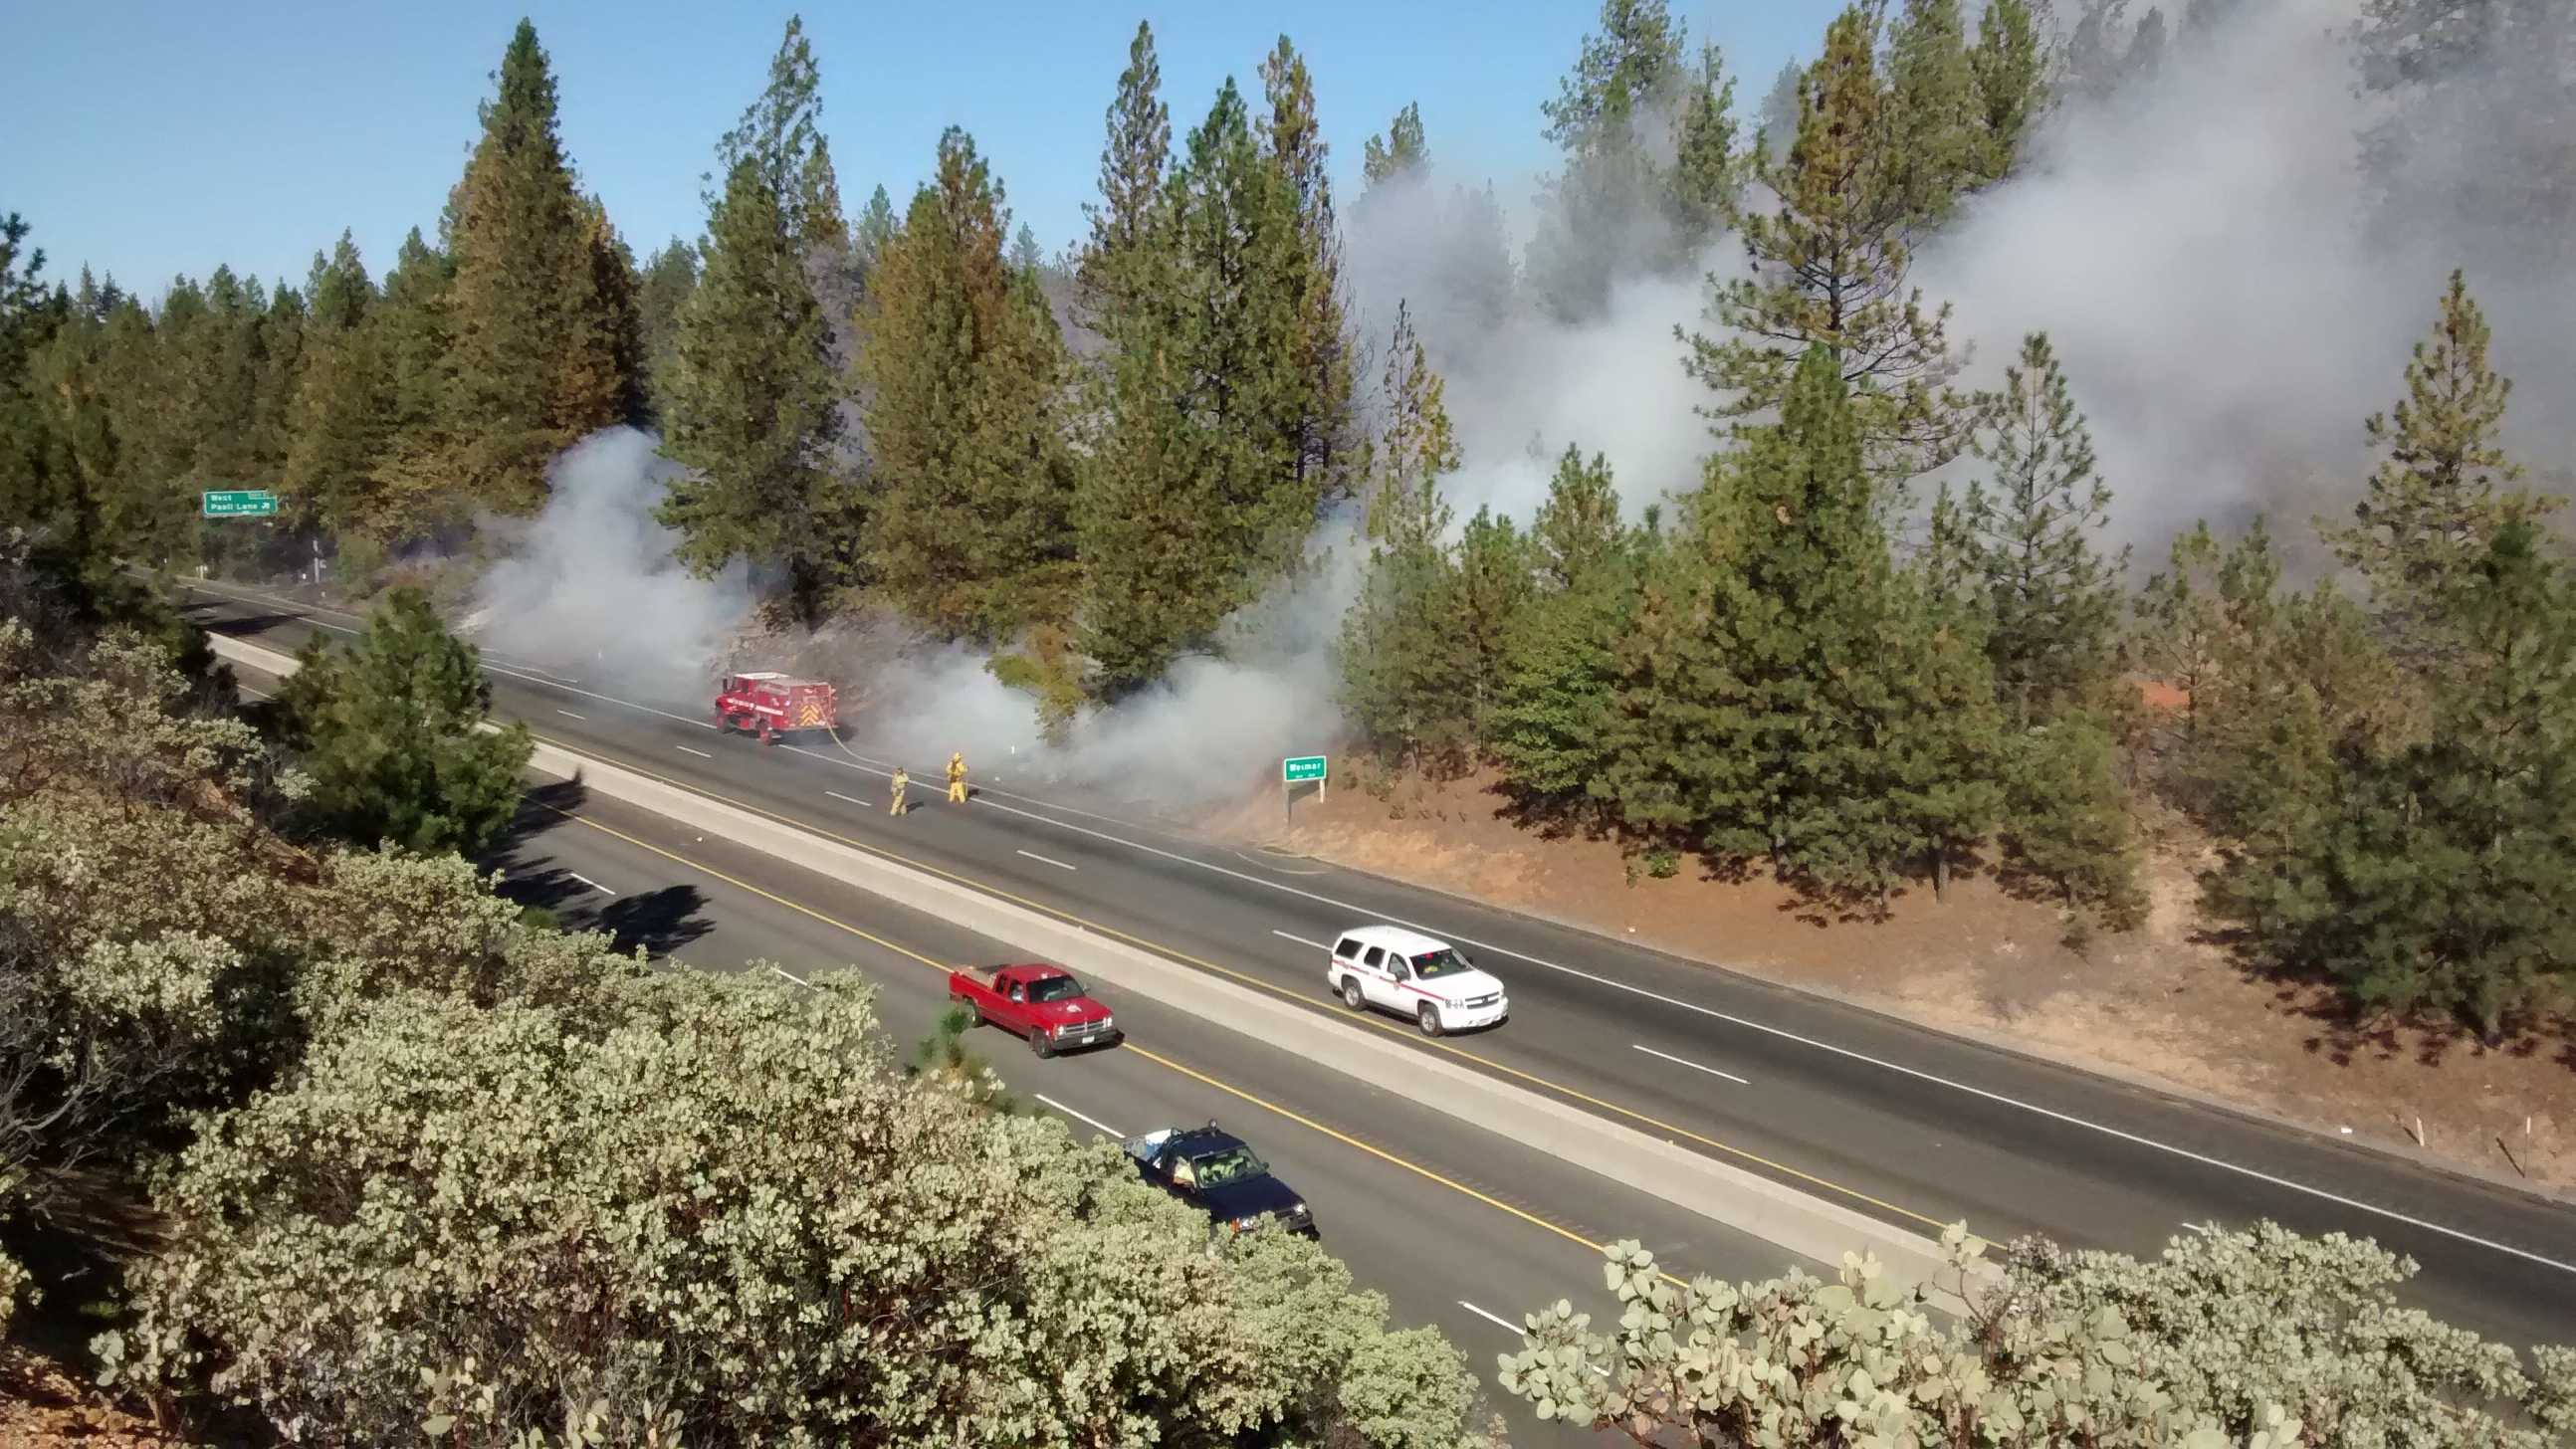 The Applegate Fire, which is more like five to seven small fires, started along I-80 on Wednesday afternoon. Crews continue to battle against the smoke and flames. Many people were evacuated from their homes, and the eastbound lanes of I-80 were shut down for hours (Oct. 8, 2014).